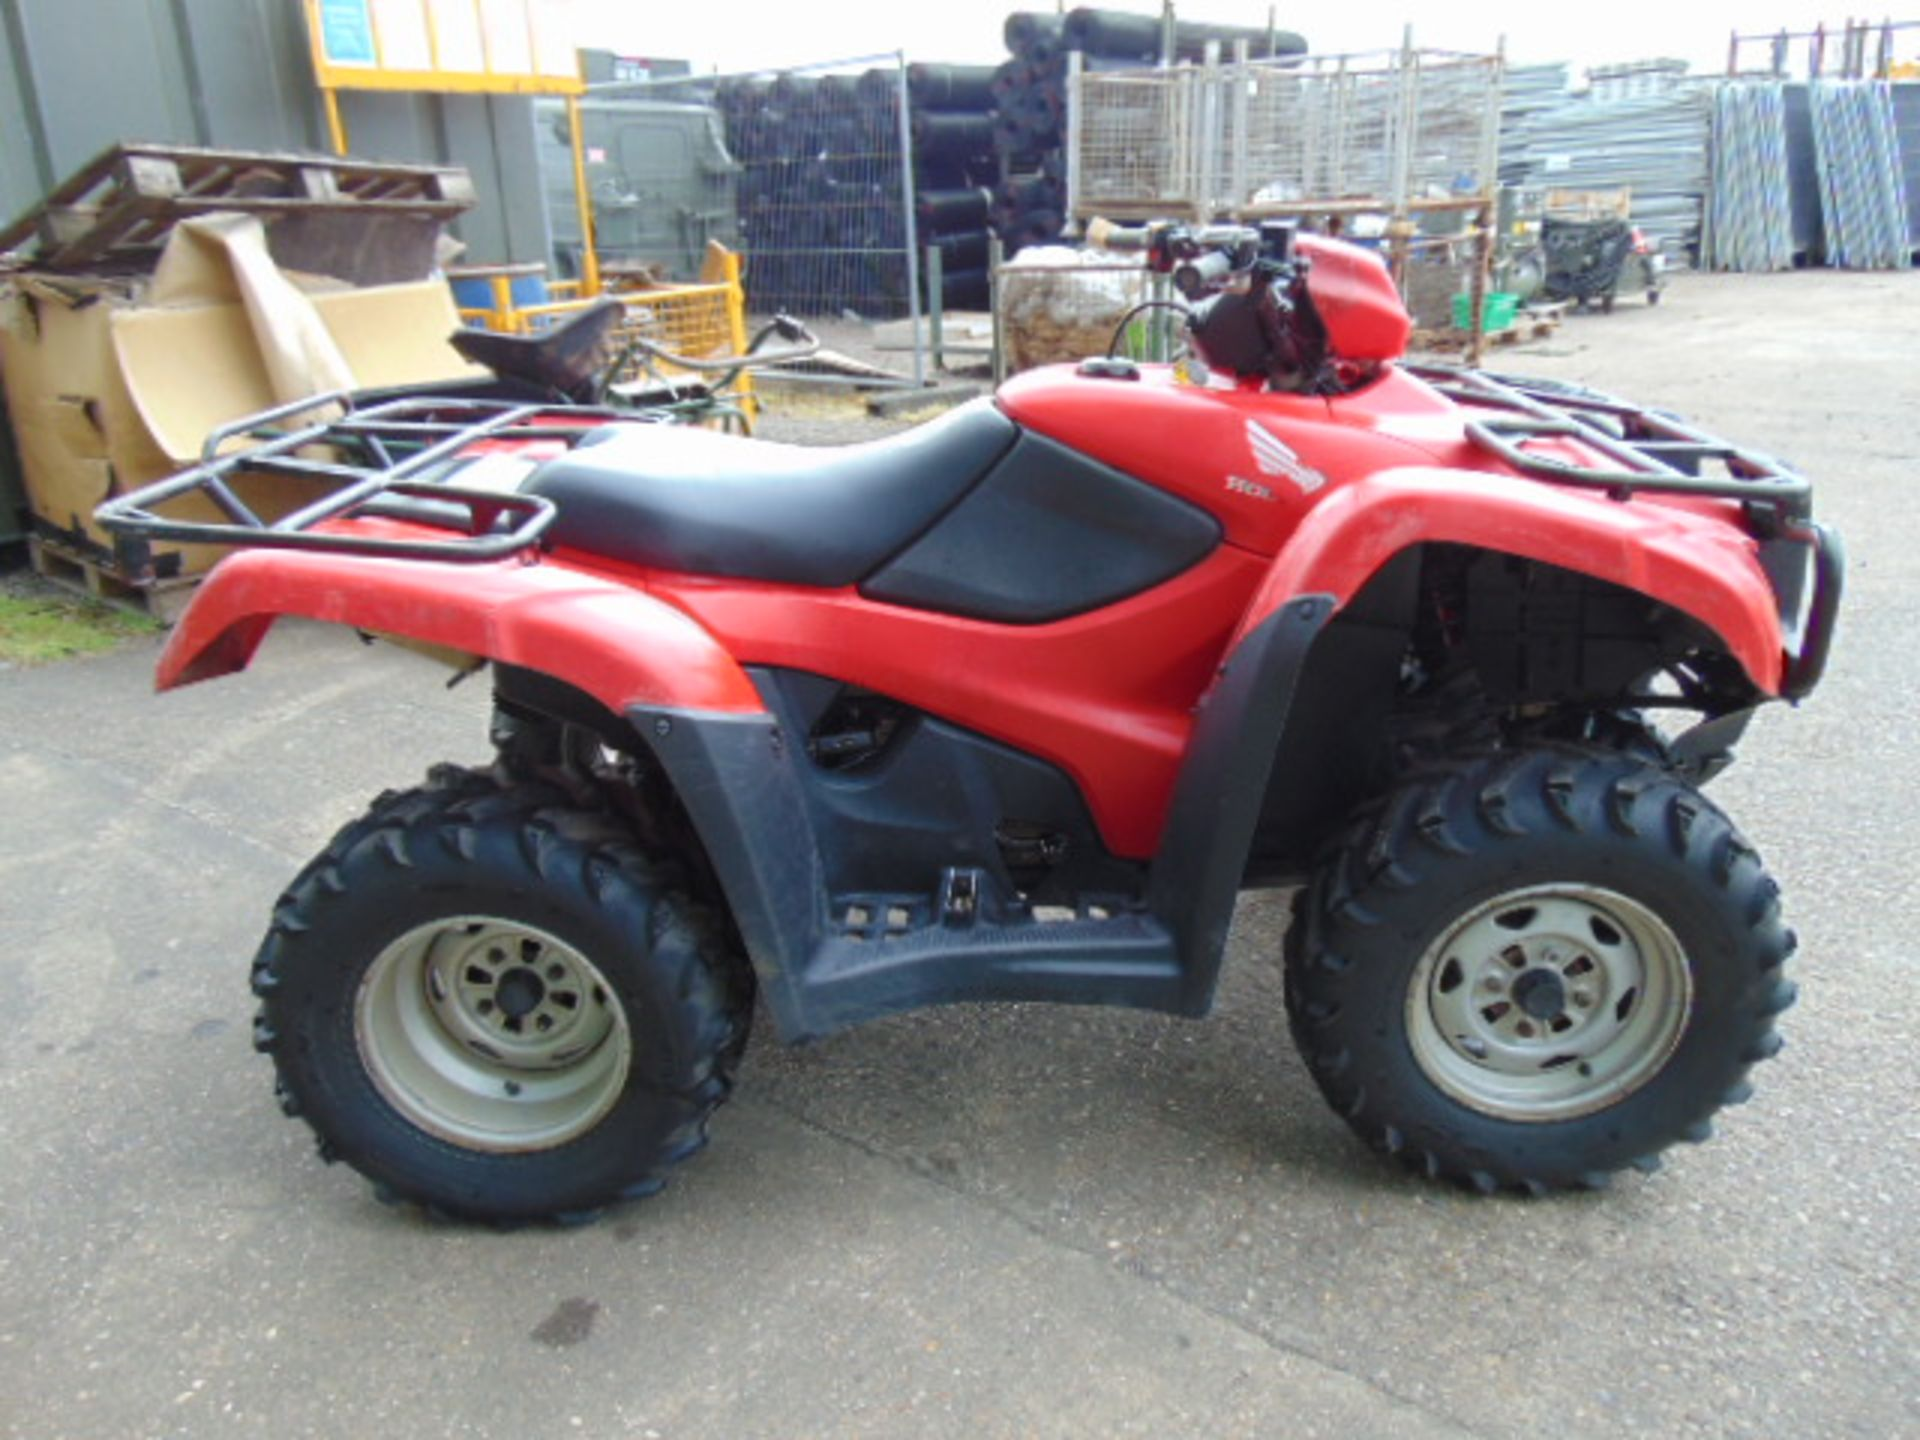 Honda TRX 500 4WD Quad Bike ONLY 2,300 HOURS! - Image 4 of 20